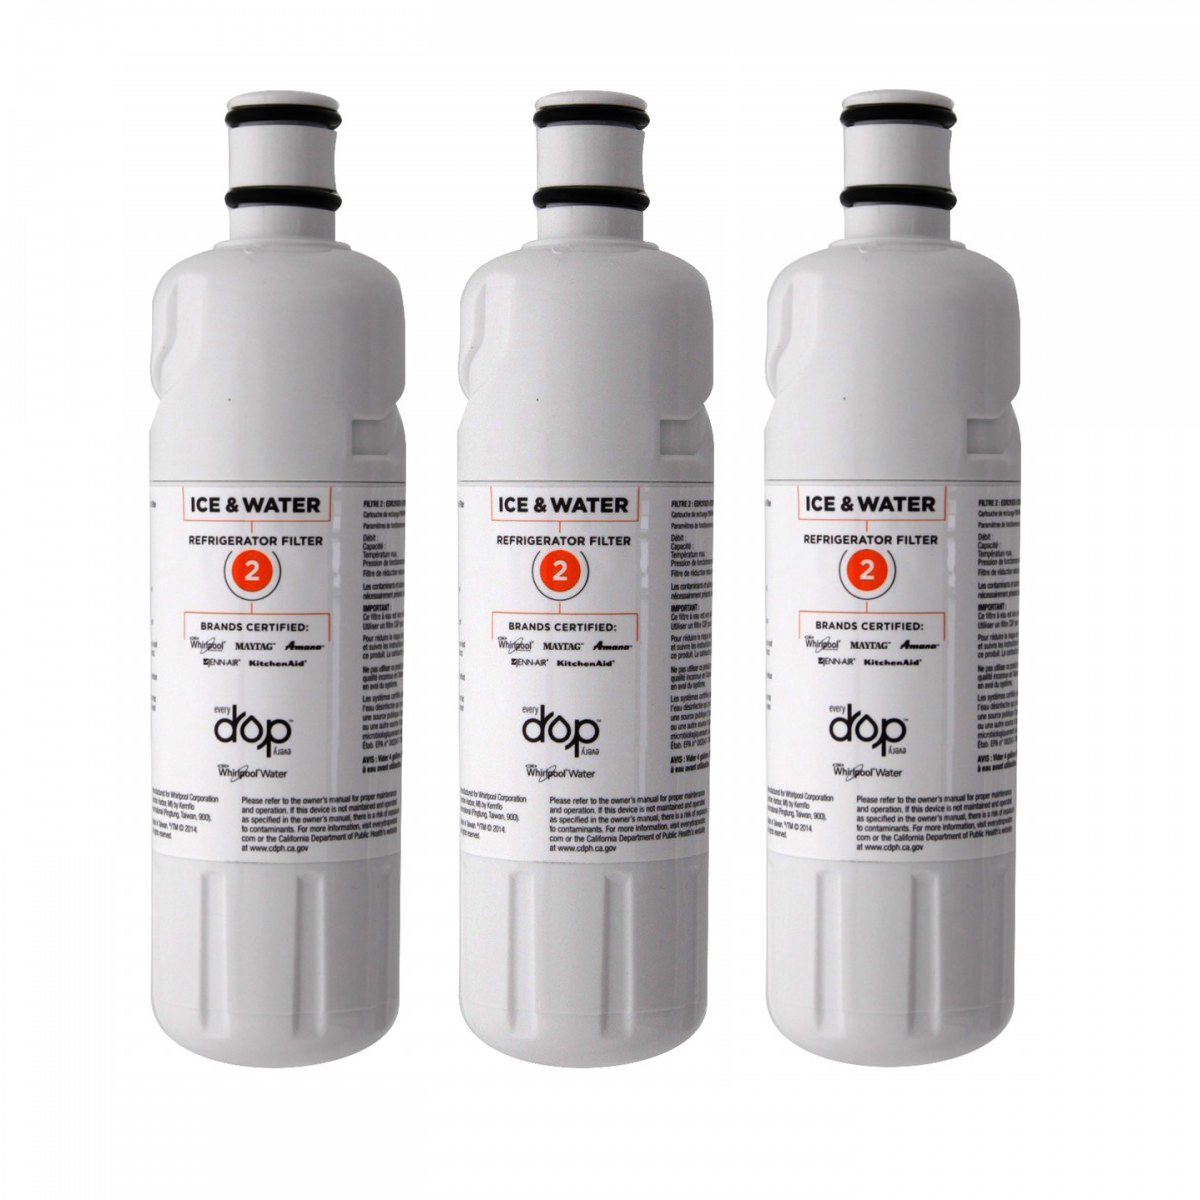 Details about EveryDrop Whirlpool W10413645A EDR2RXD1 FILTER2 Refrigerator  Water Filter 3 Pac